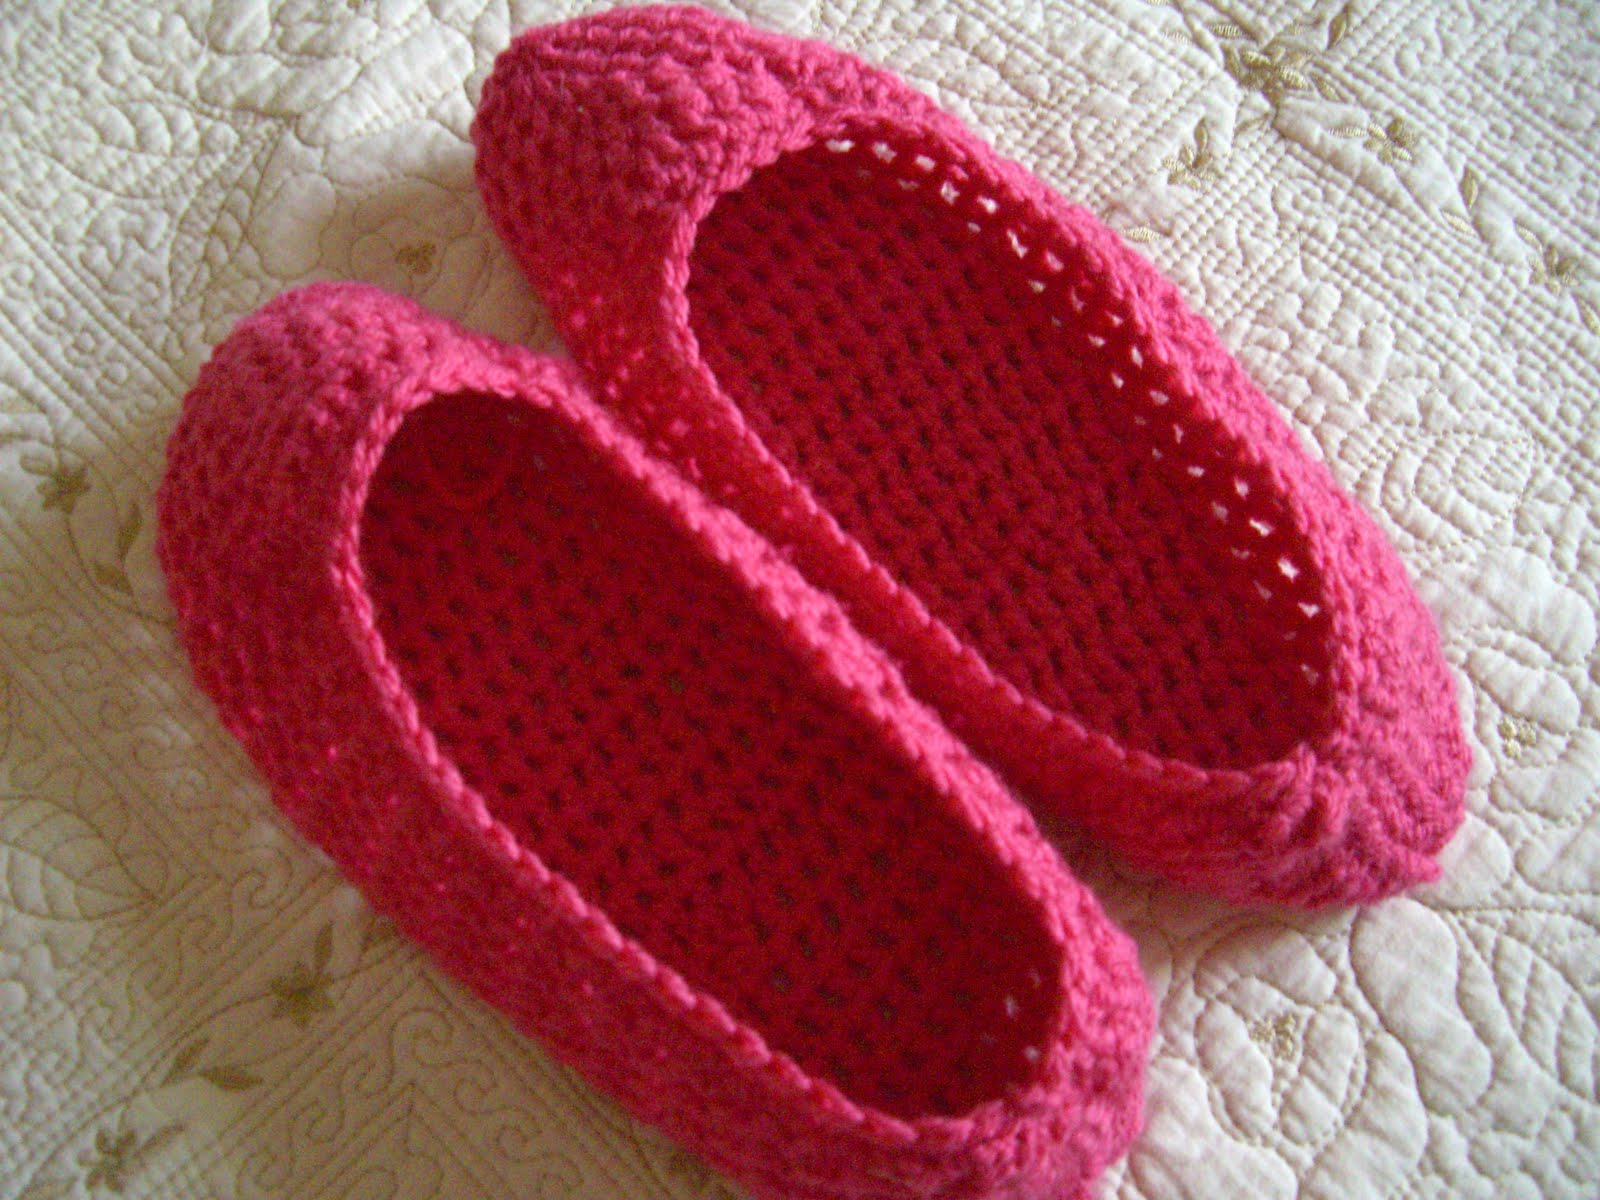 Free Crochet Patterns Bedroom Slippers : CROCHET SLIPPERS PATTERN Crochet Projects